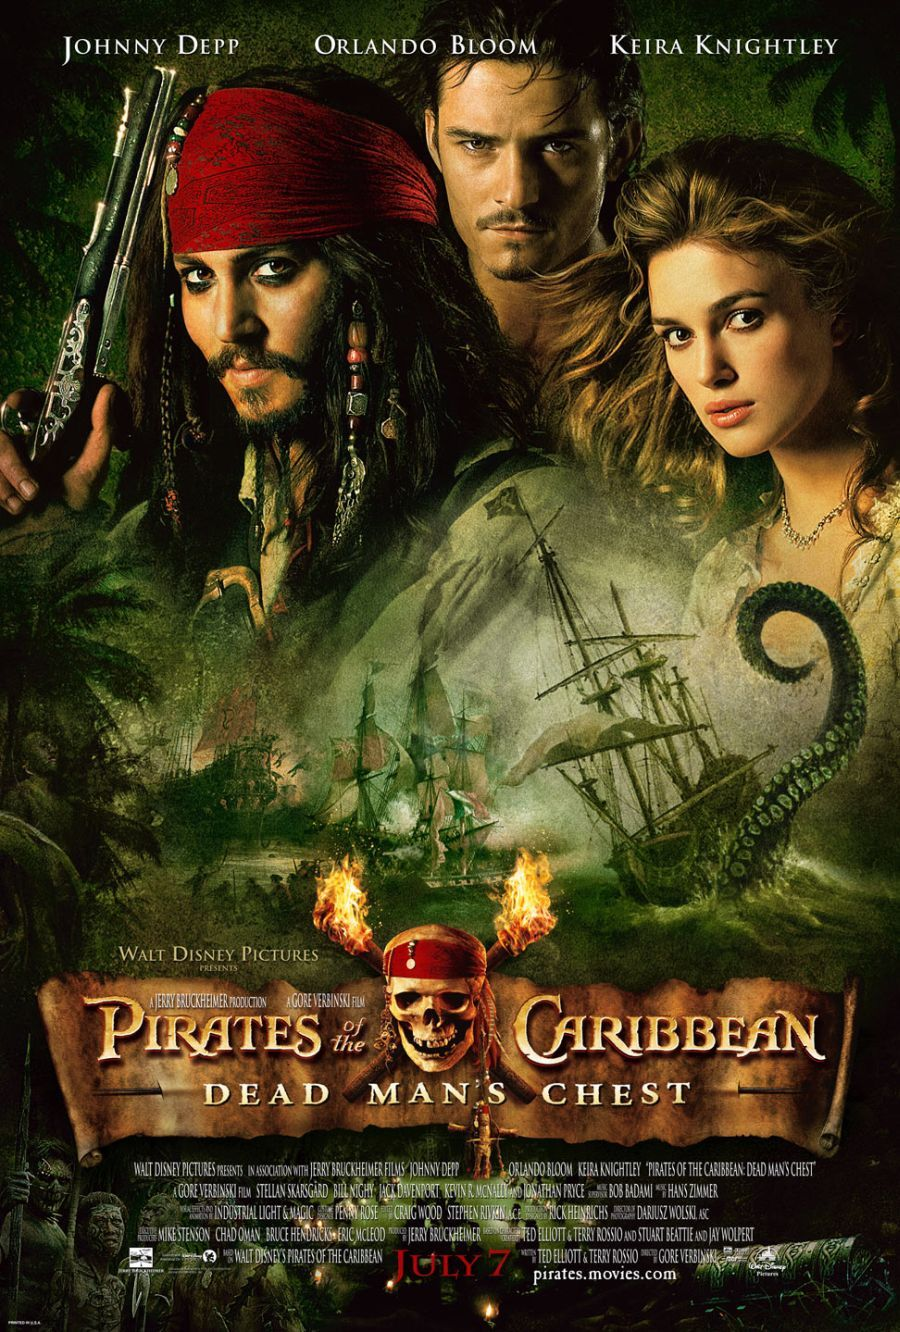 Pirates of the carribian porn movie pics fucked gallery